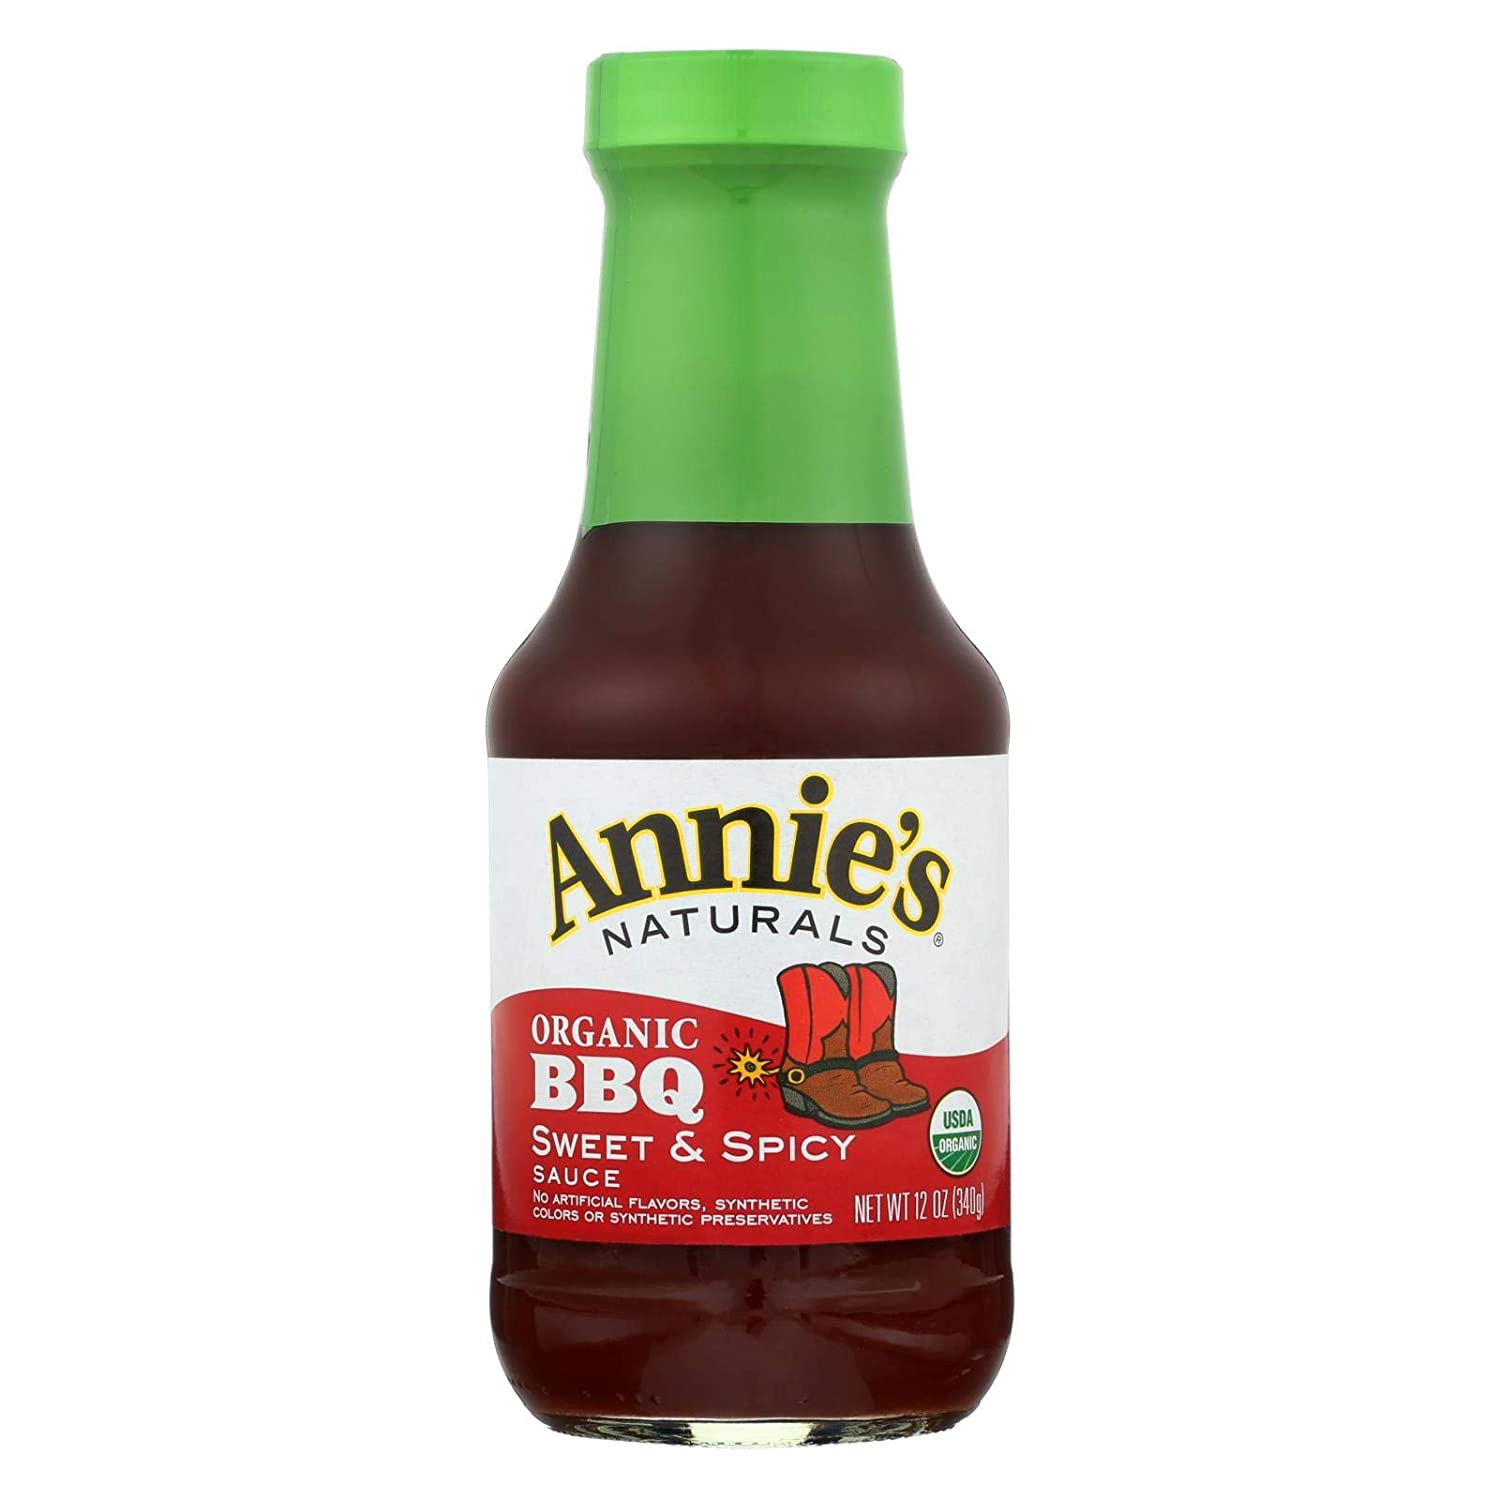 Organic Sweet & Spicy BBQ Sauce 12 Ounces (Case of 12)